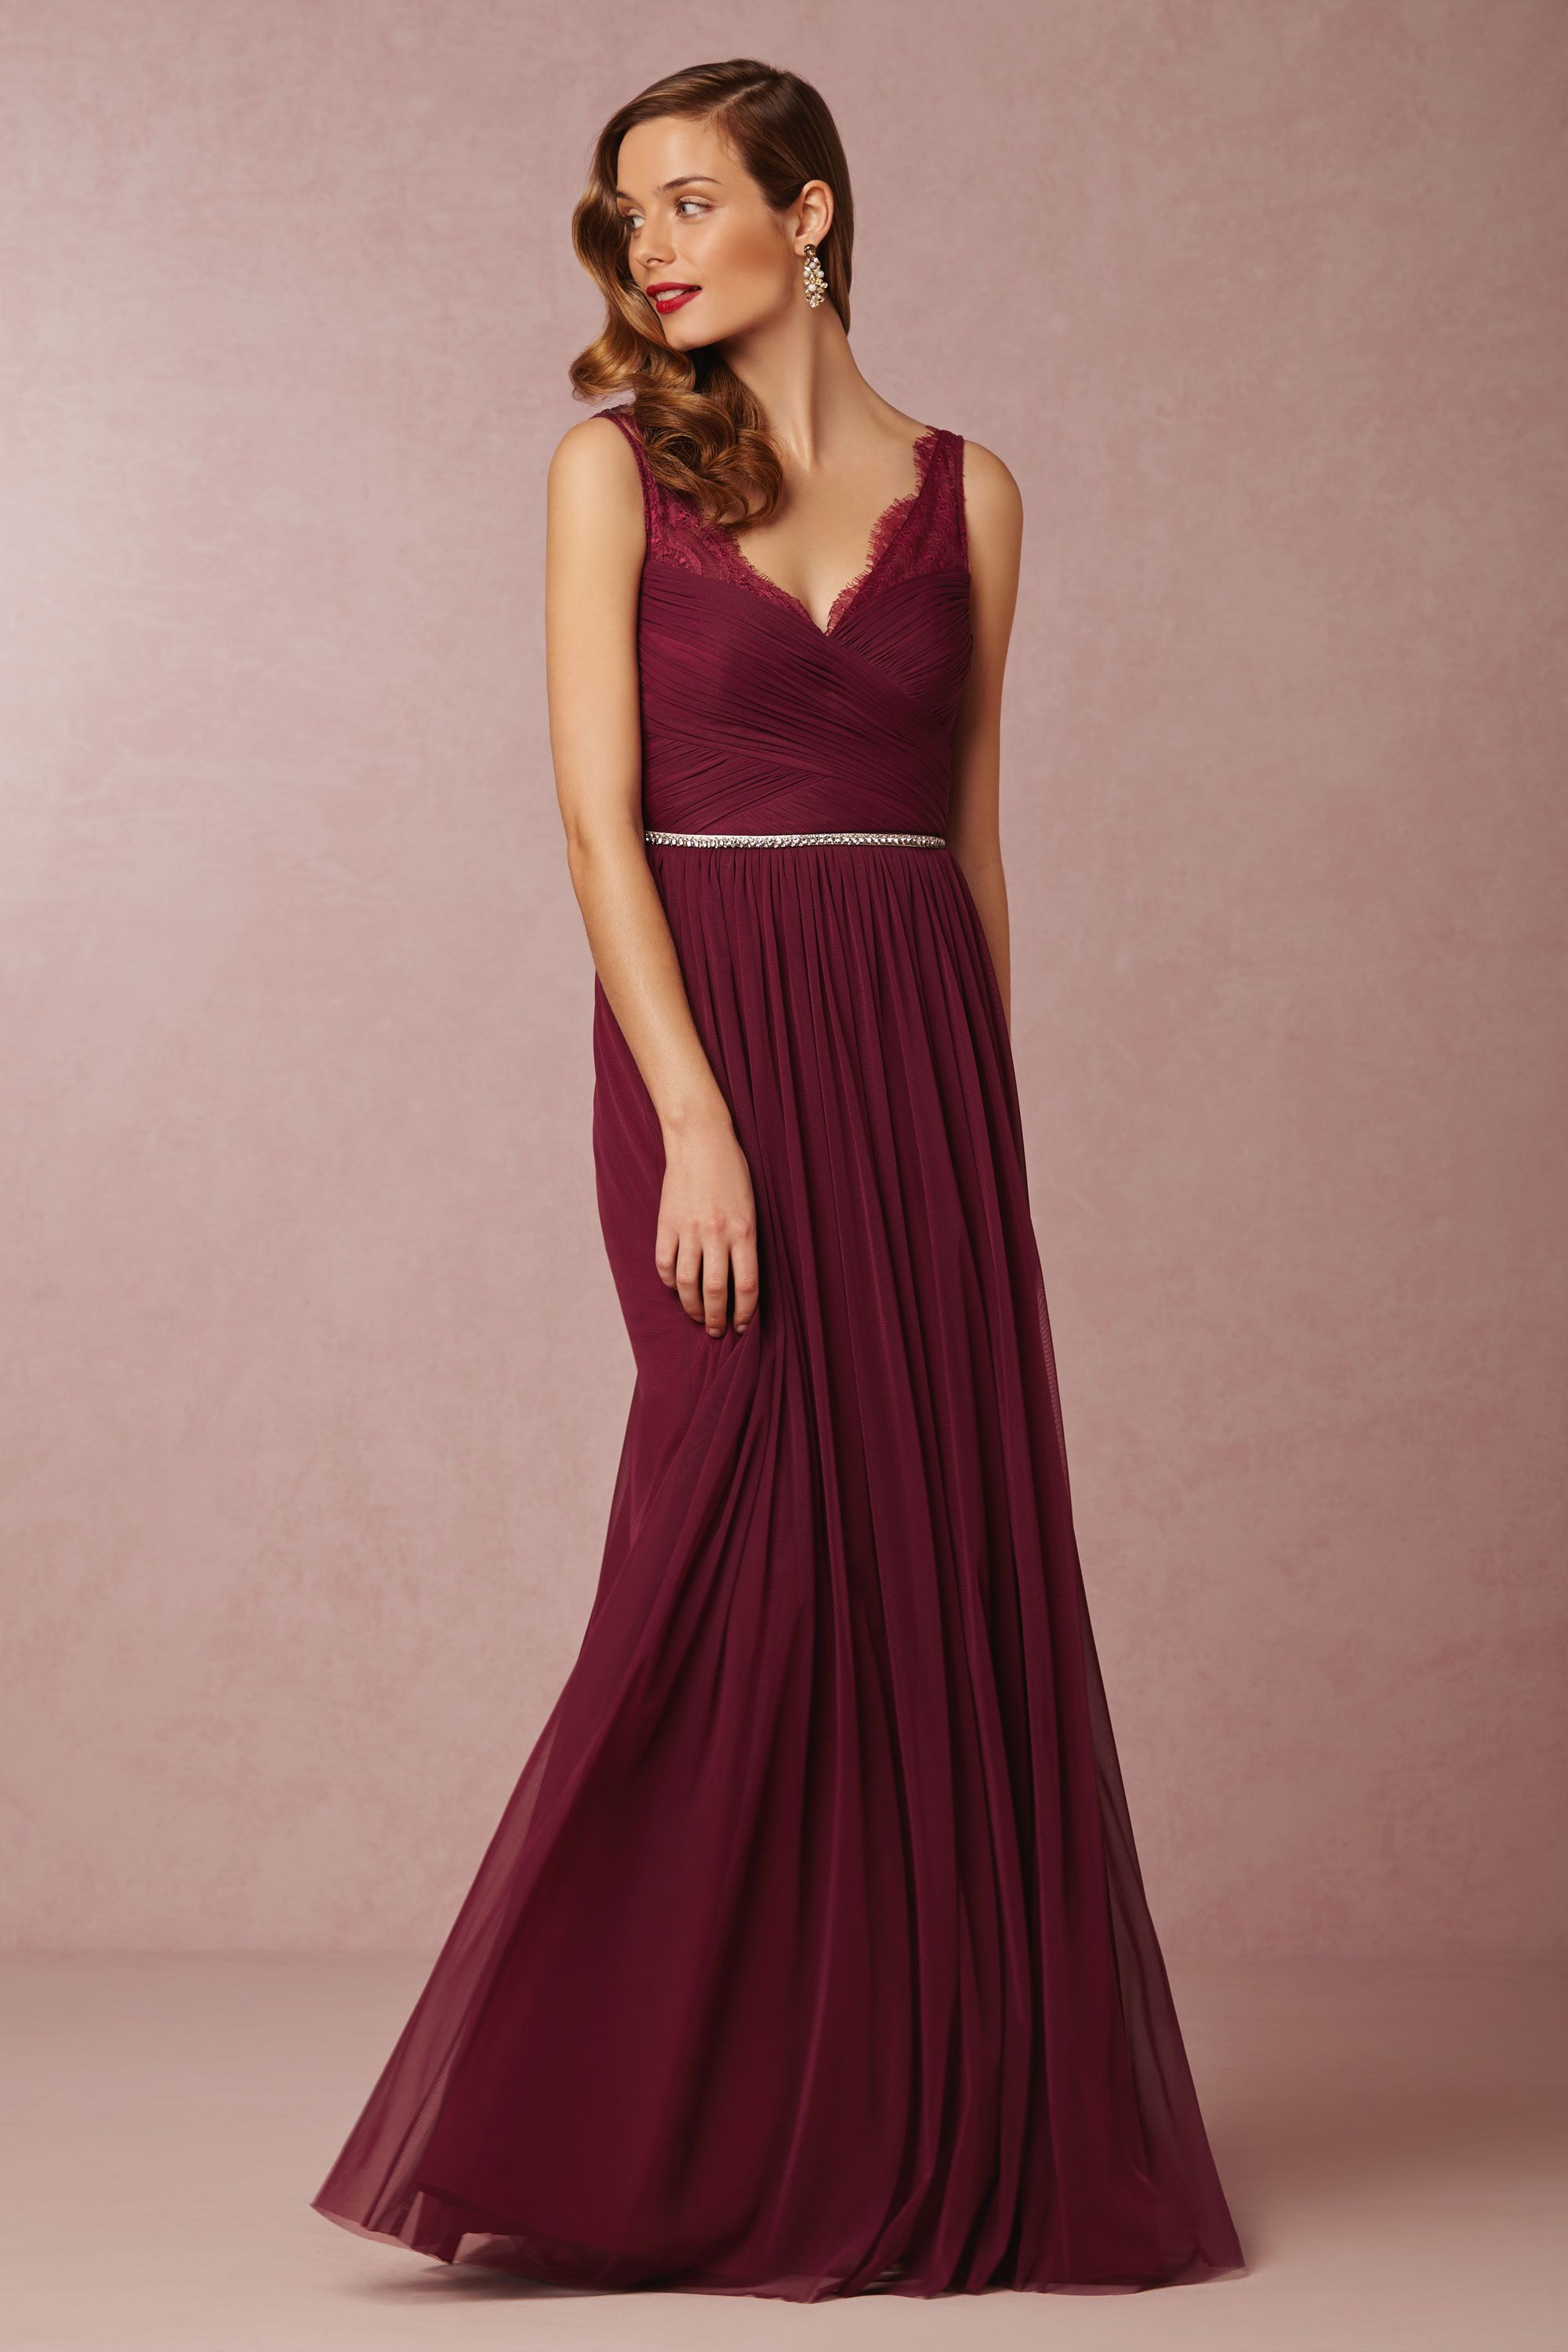 Fleur dress in bridesmaids bridesmaid dresses at bhldn explore burgundy bridesmaid dresses and more ombrellifo Image collections